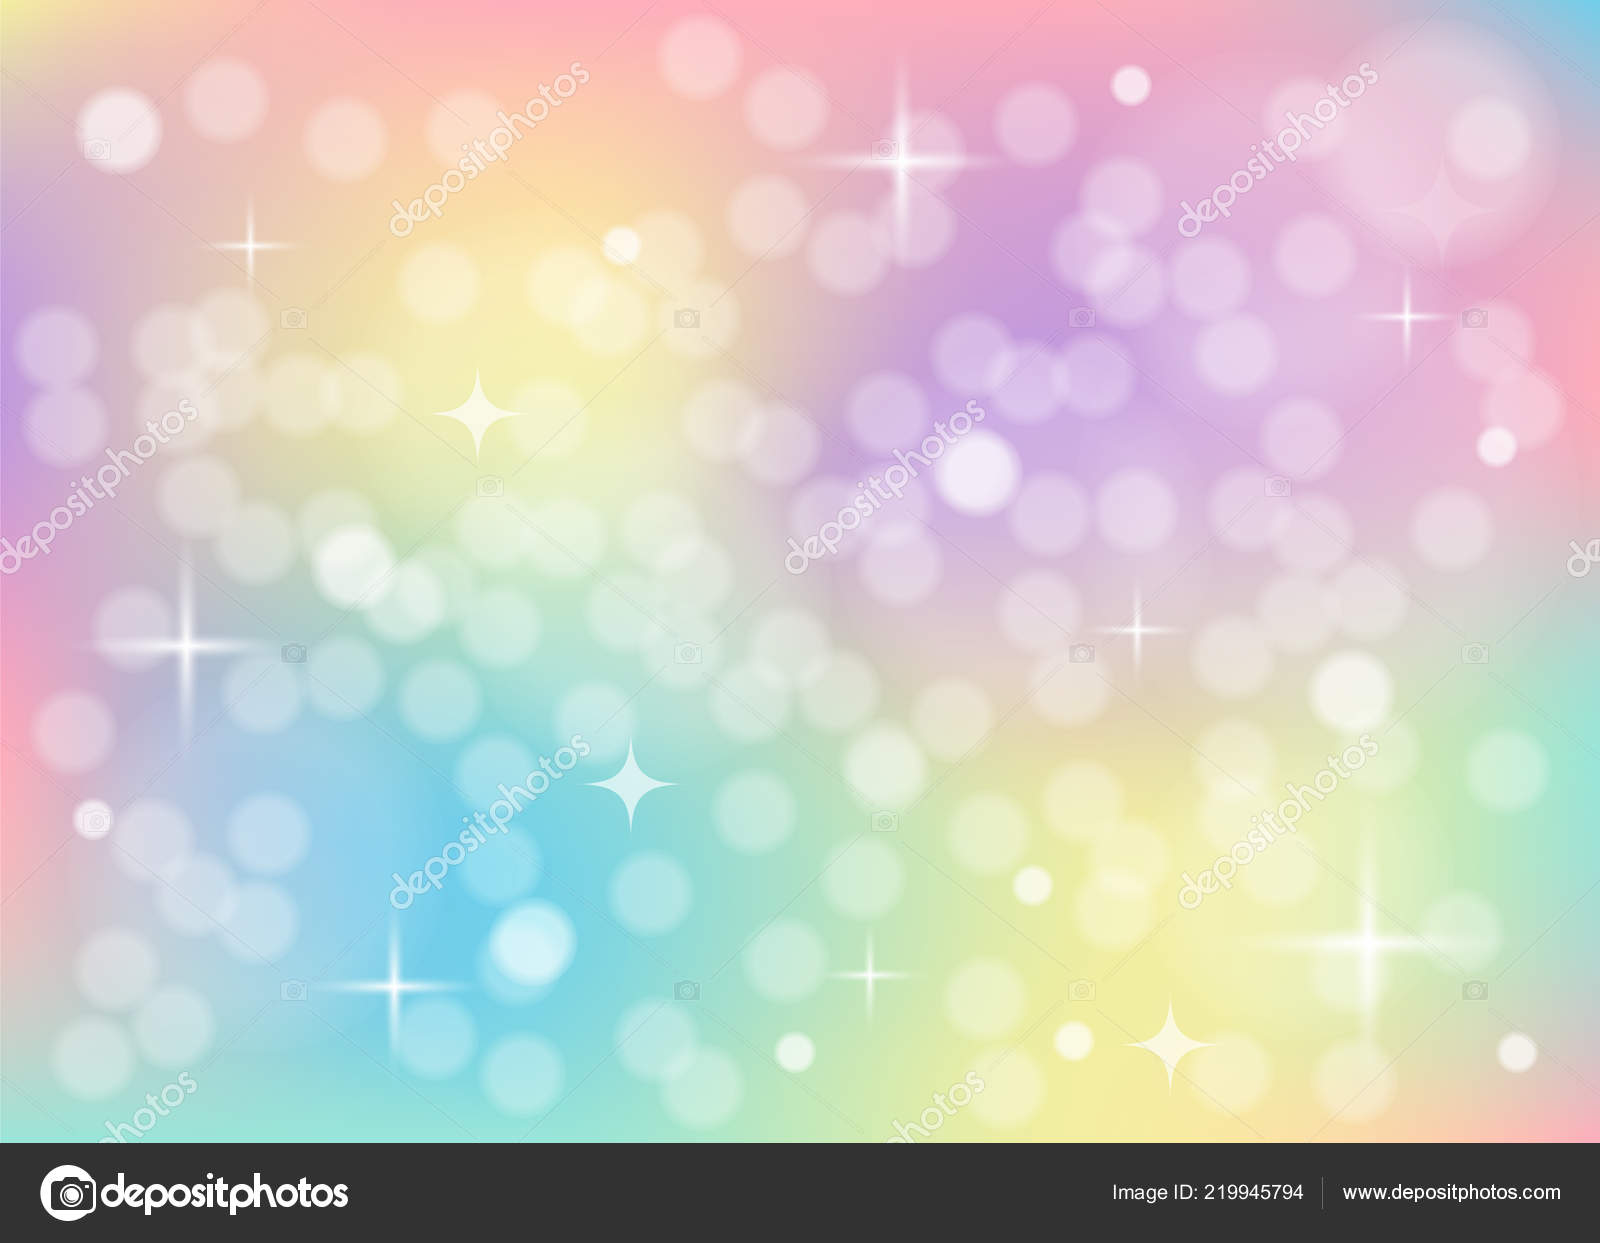 Galaxy Pastel Unicorn Wallpaper Rainbow Pastel Background